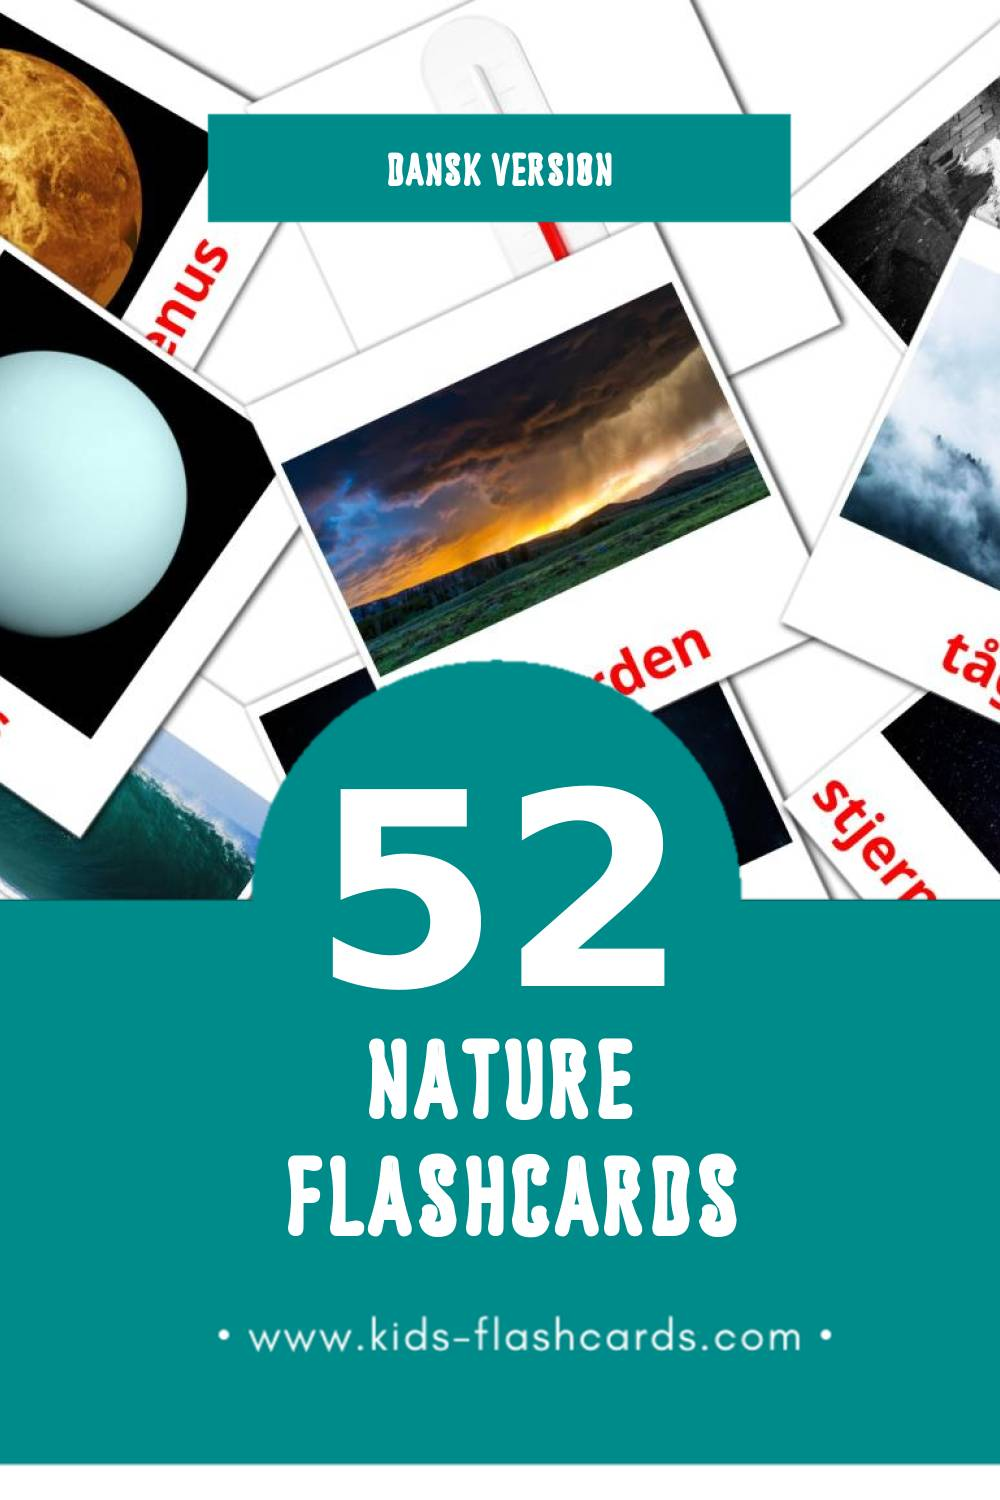 Visual Natur Flashcards for Toddlers (51 cards in Dansk)